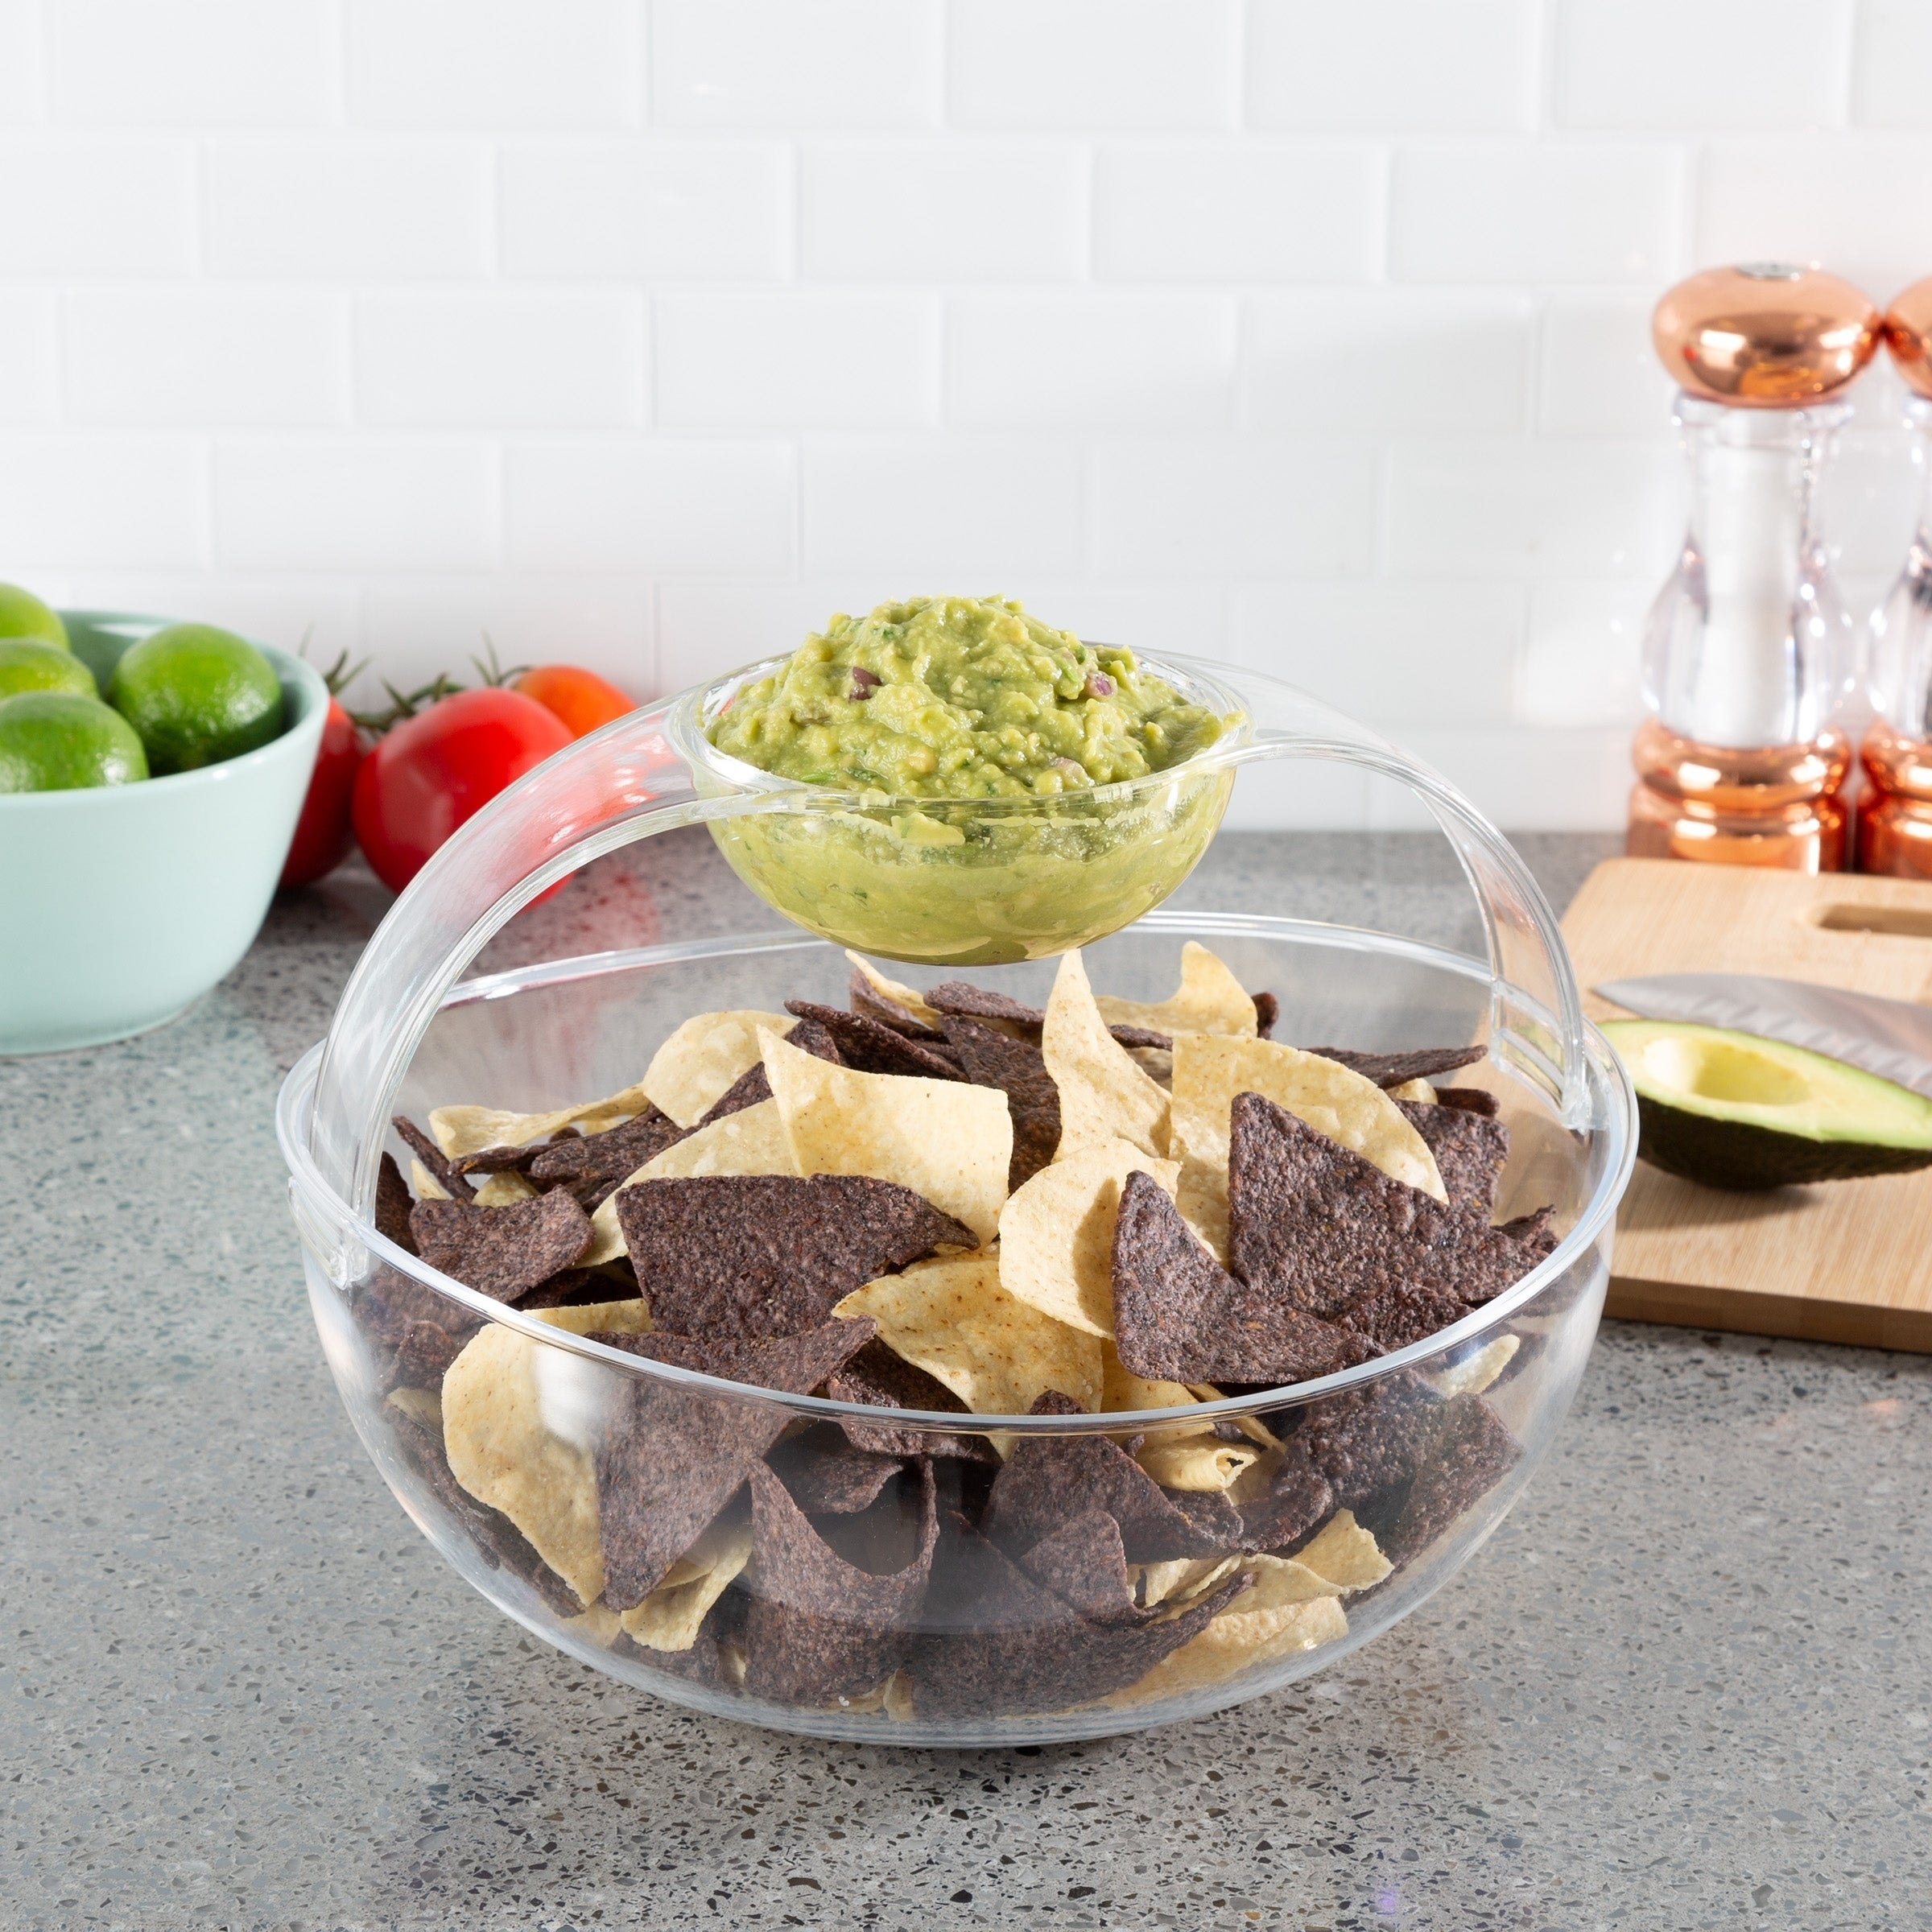 Chip And Dip Bowl Serving Set For Chips Salsa Fruit Dipore By Clic Cuisine Free Shipping On Orders Over 45 25435370